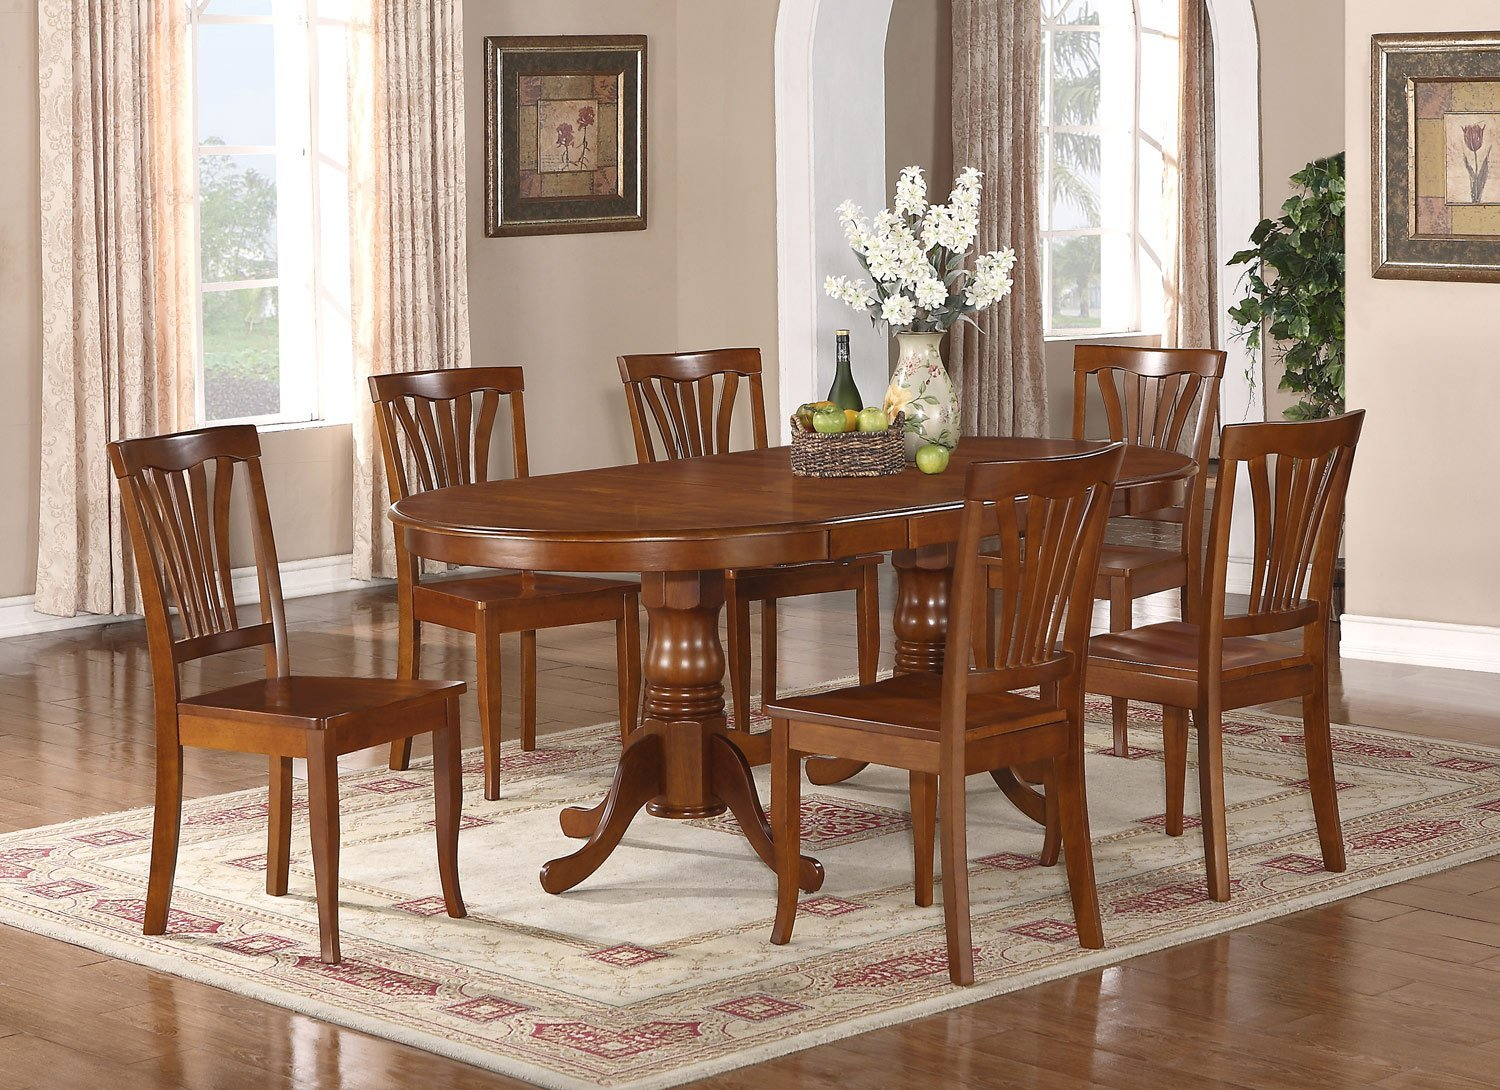 pc newton oval dining room set table 8 wood seat chairs in saddle